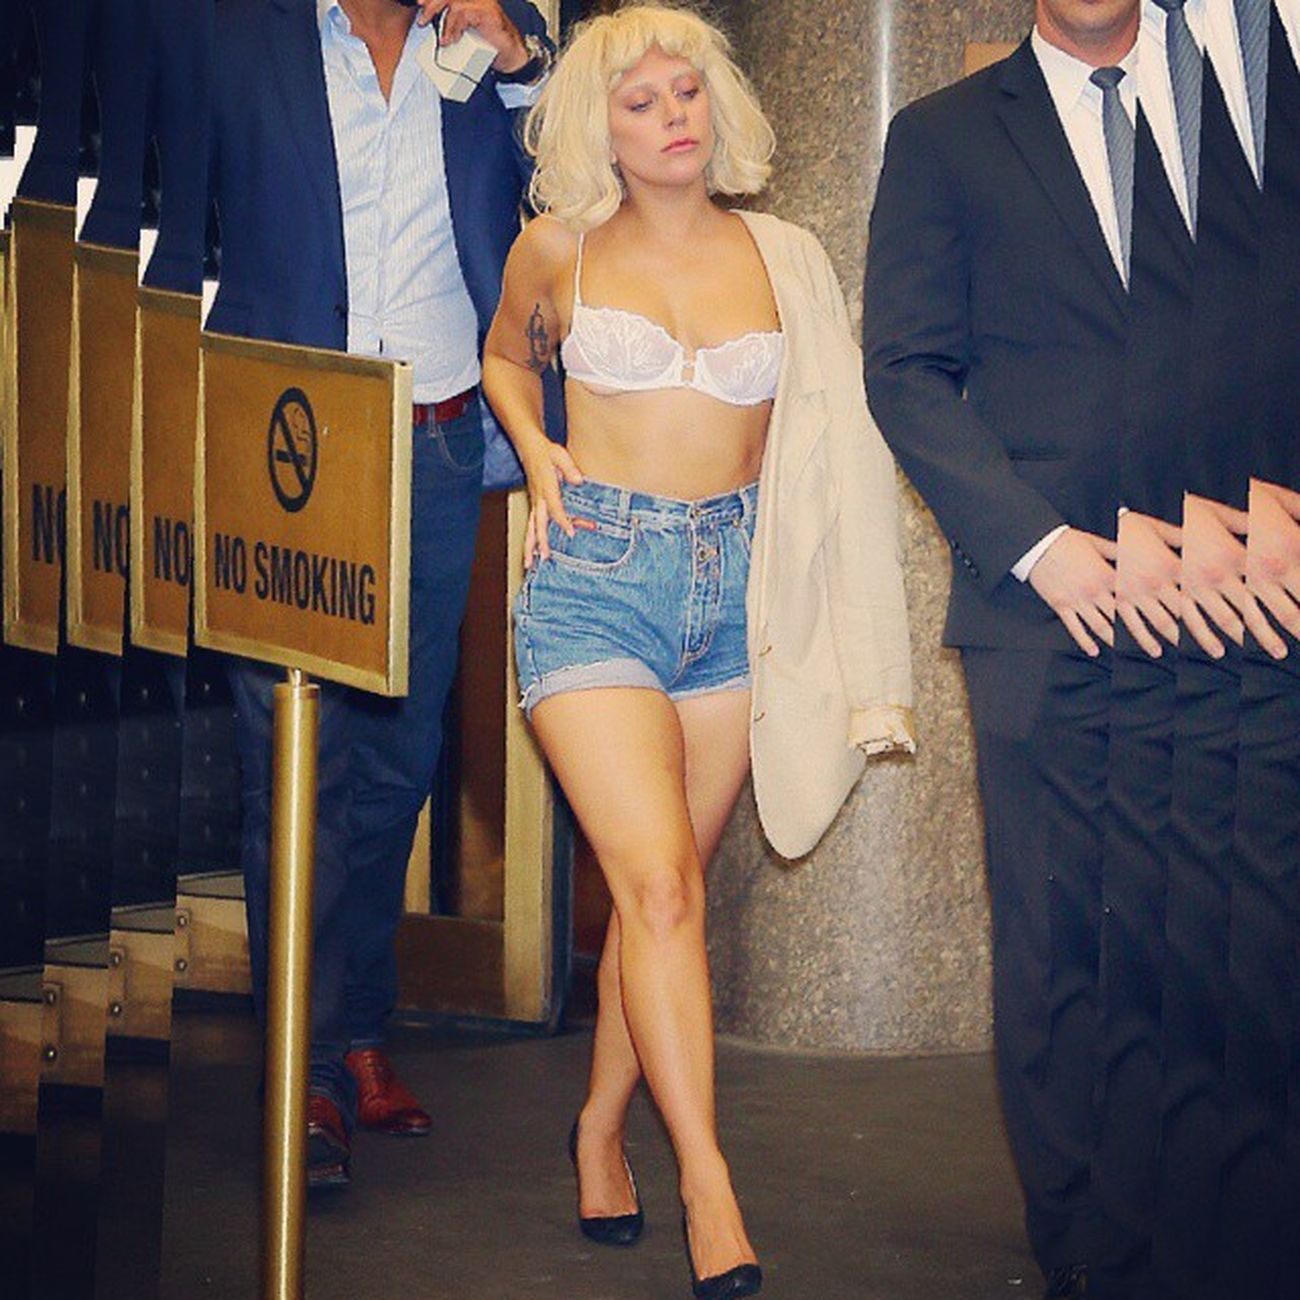 👌✌💋👊😍 Gaga Cheektocheek Littlemonsters Littlemonster Queen Hot